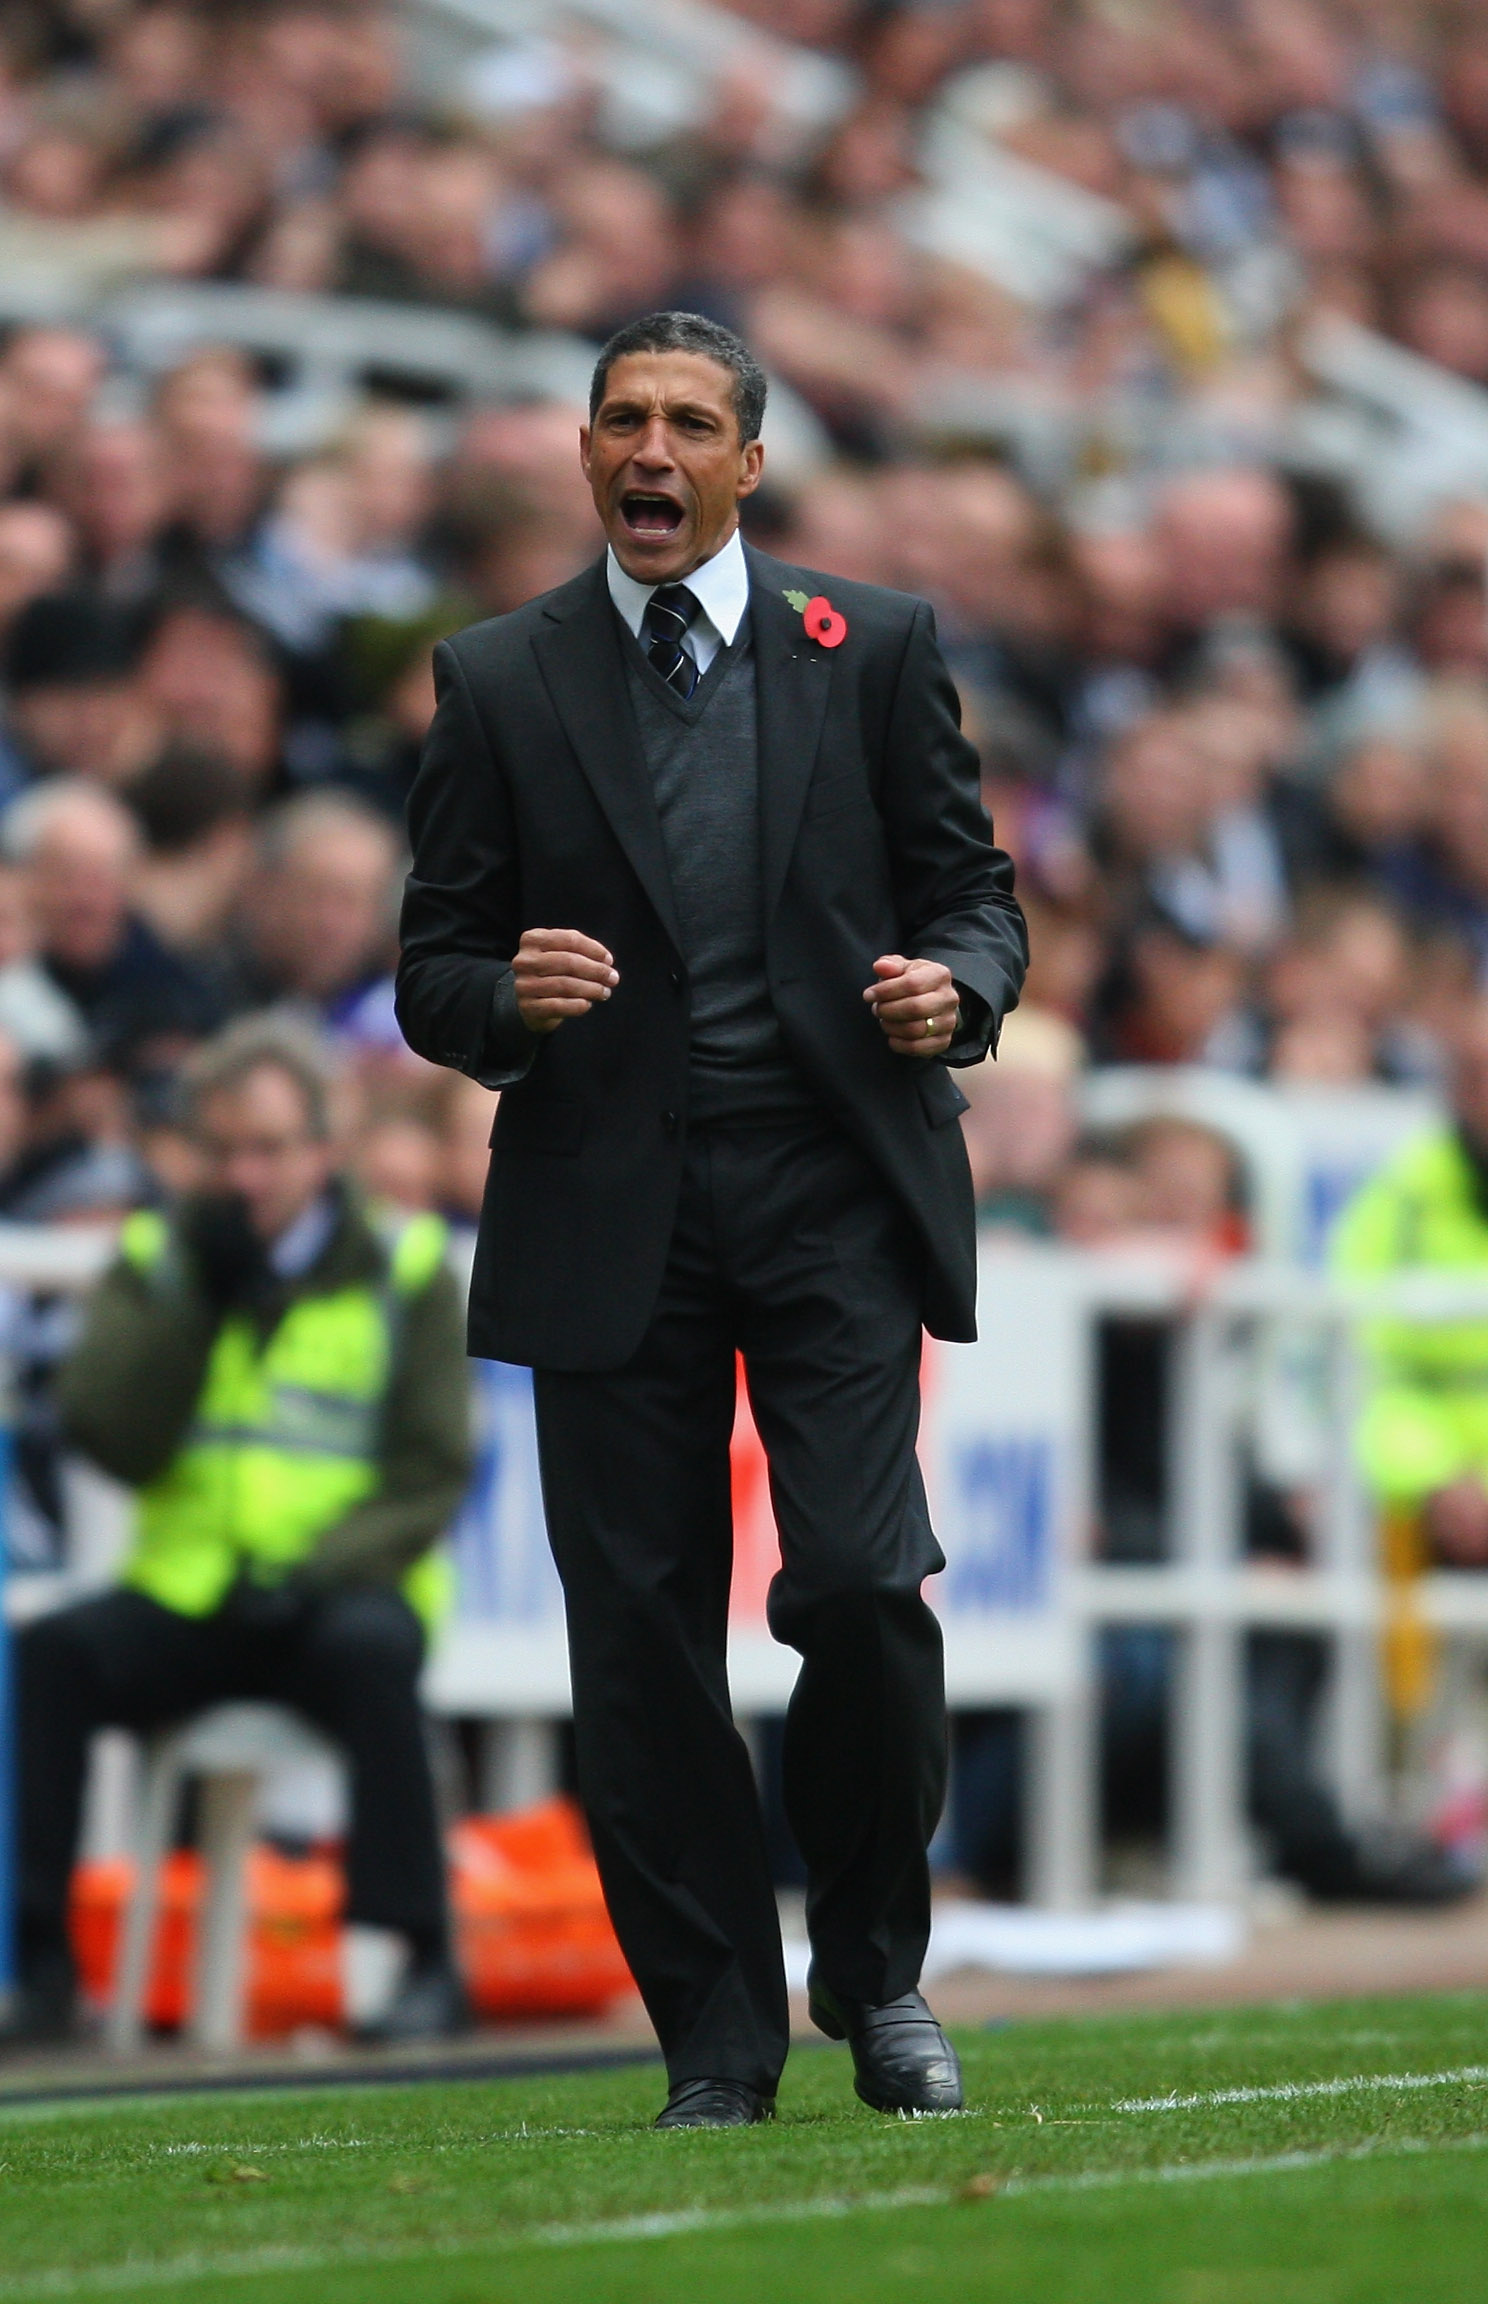 NEWCASTLE UPON TYNE, ENGLAND - OCTOBER 31:  Newcastle manager Chris Hughton reacts during the Barclays Premier League match between Newcastle United and Sunderland at St James' Park on October 31, 2010 in Newcastle upon Tyne, England.  (Photo by Stu Forst